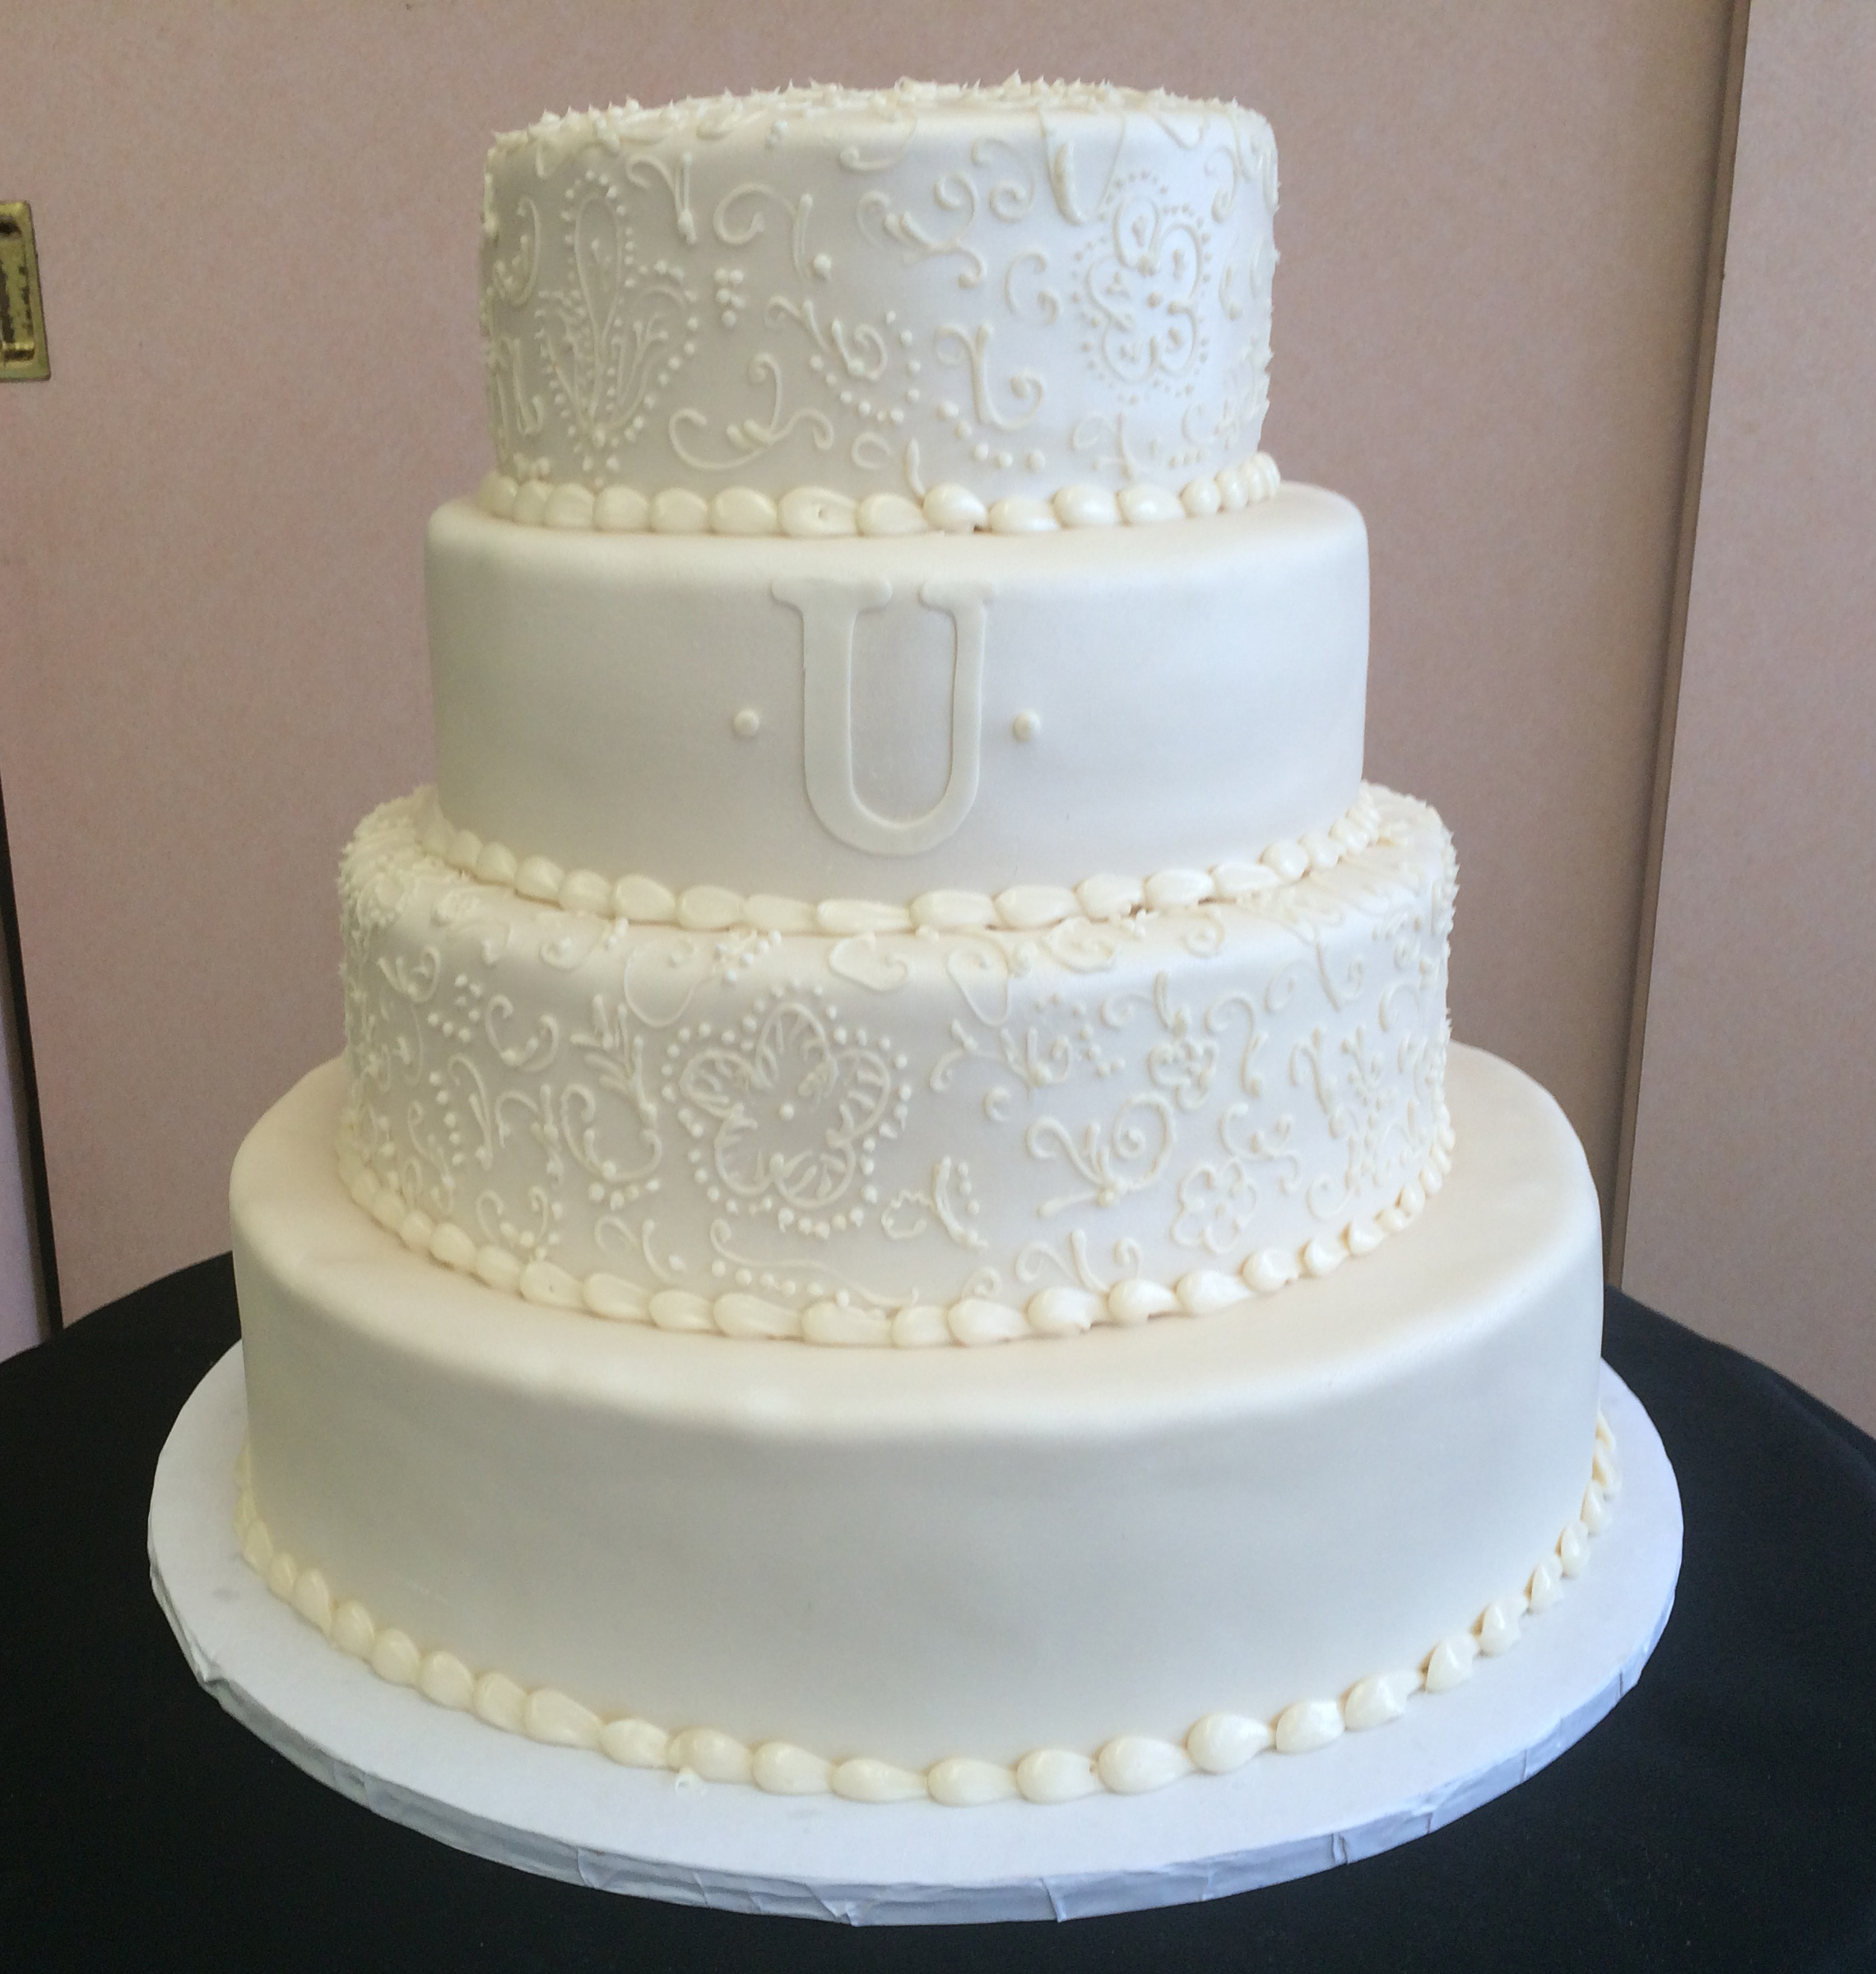 Ivory Rolled Fondant pealized with henna patterened butter cream design. Single Monogram.jpg